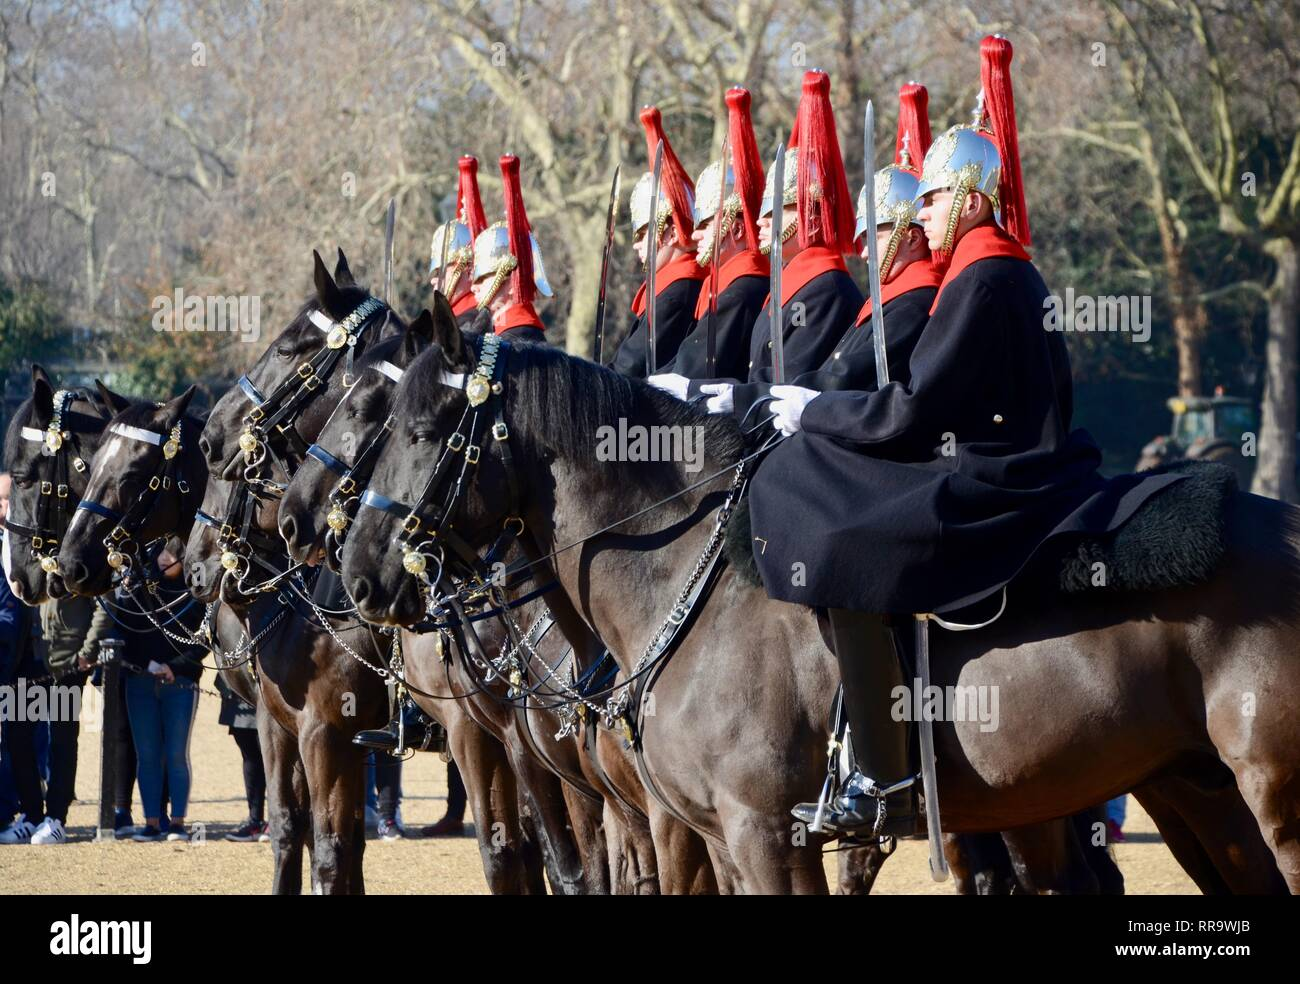 a line of soldiers on horseback at londons changing of the guard ceremony UK - Stock Image